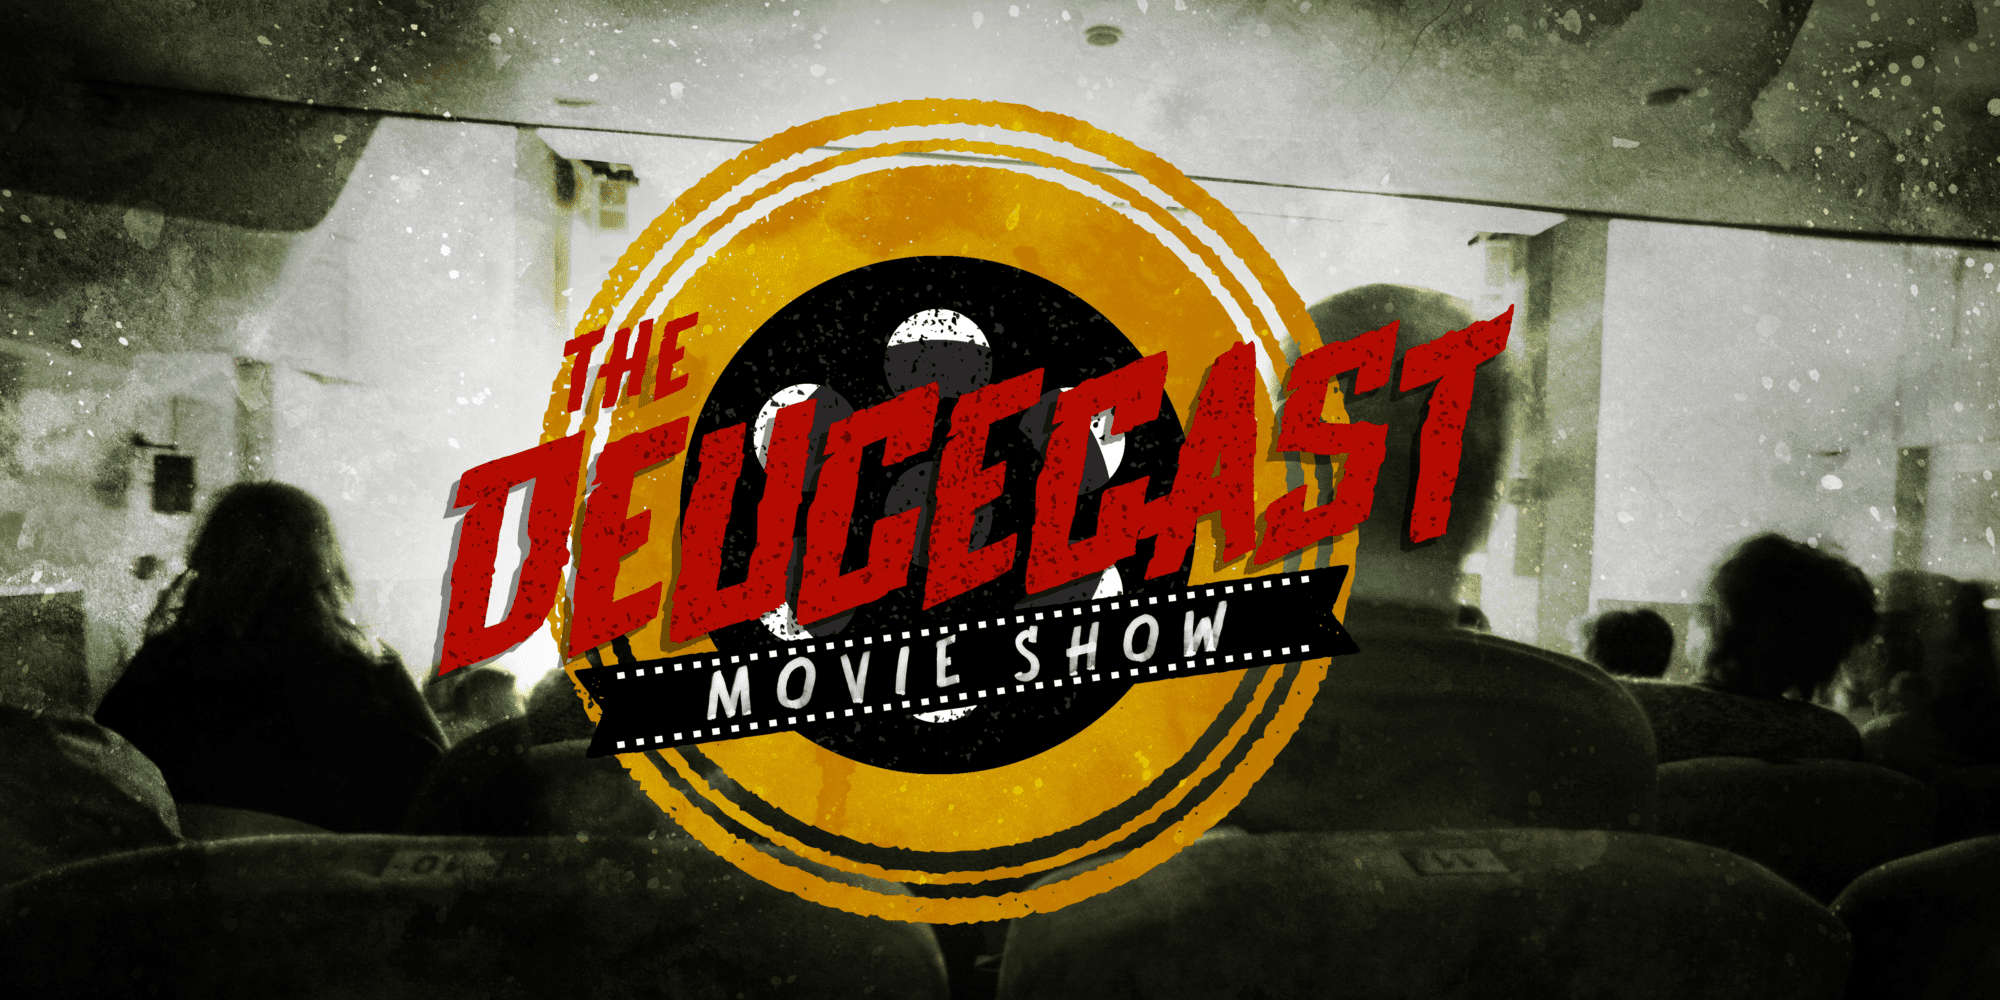 The Deucecast podcast